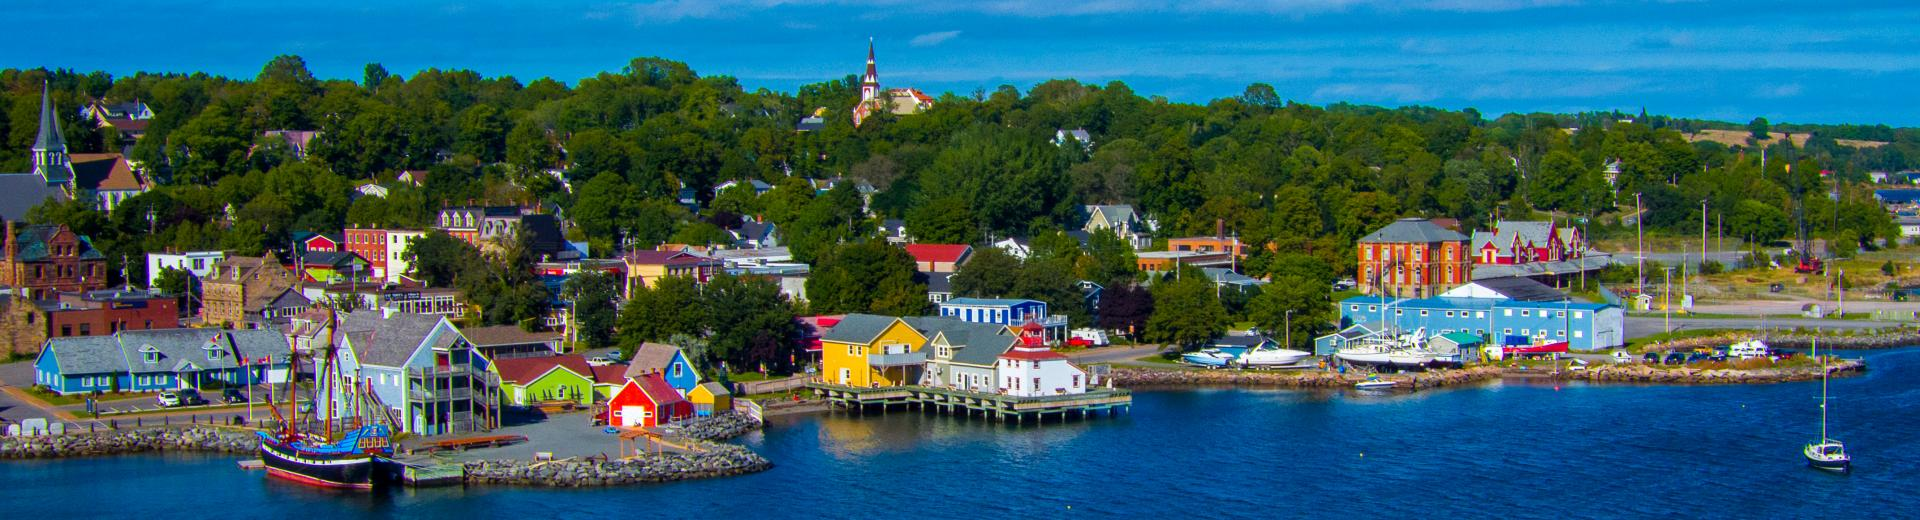 Record-setting Tourism Numbers for Nova Scotia in 2016 | Tourism ...